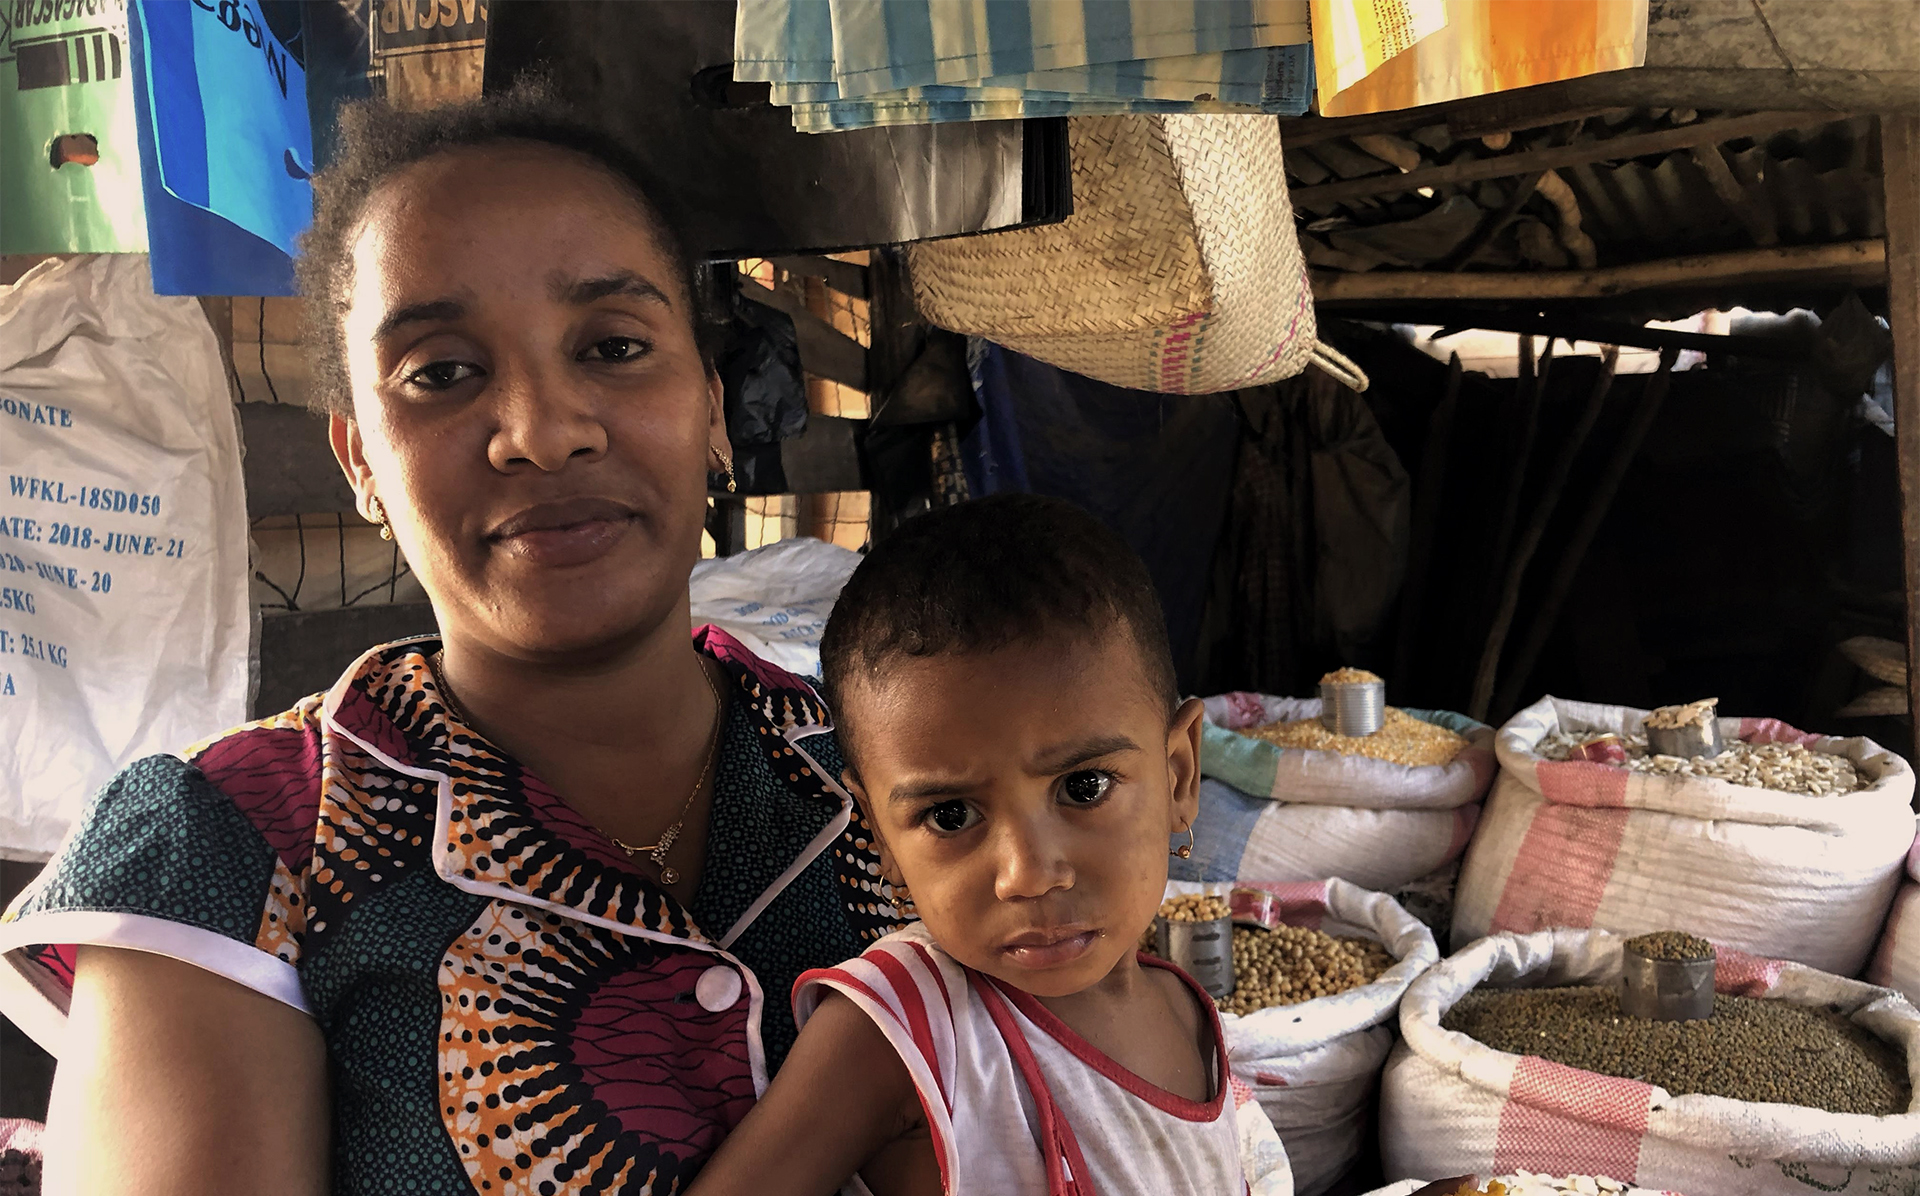 Woman and child in front of a food market stall